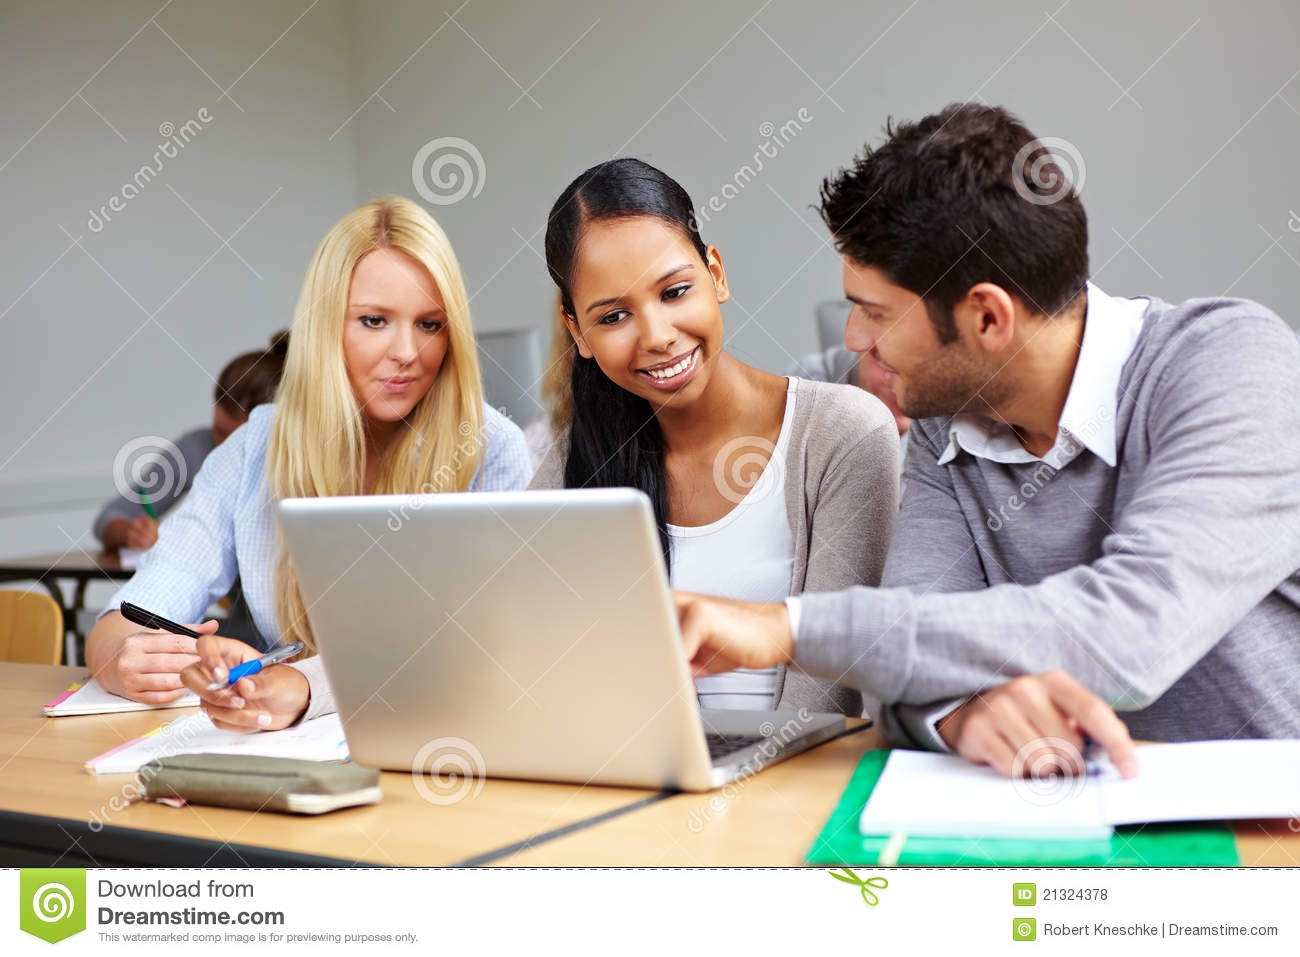 Students Learning Together Royalty Free Stock Photos - Image: 21324378